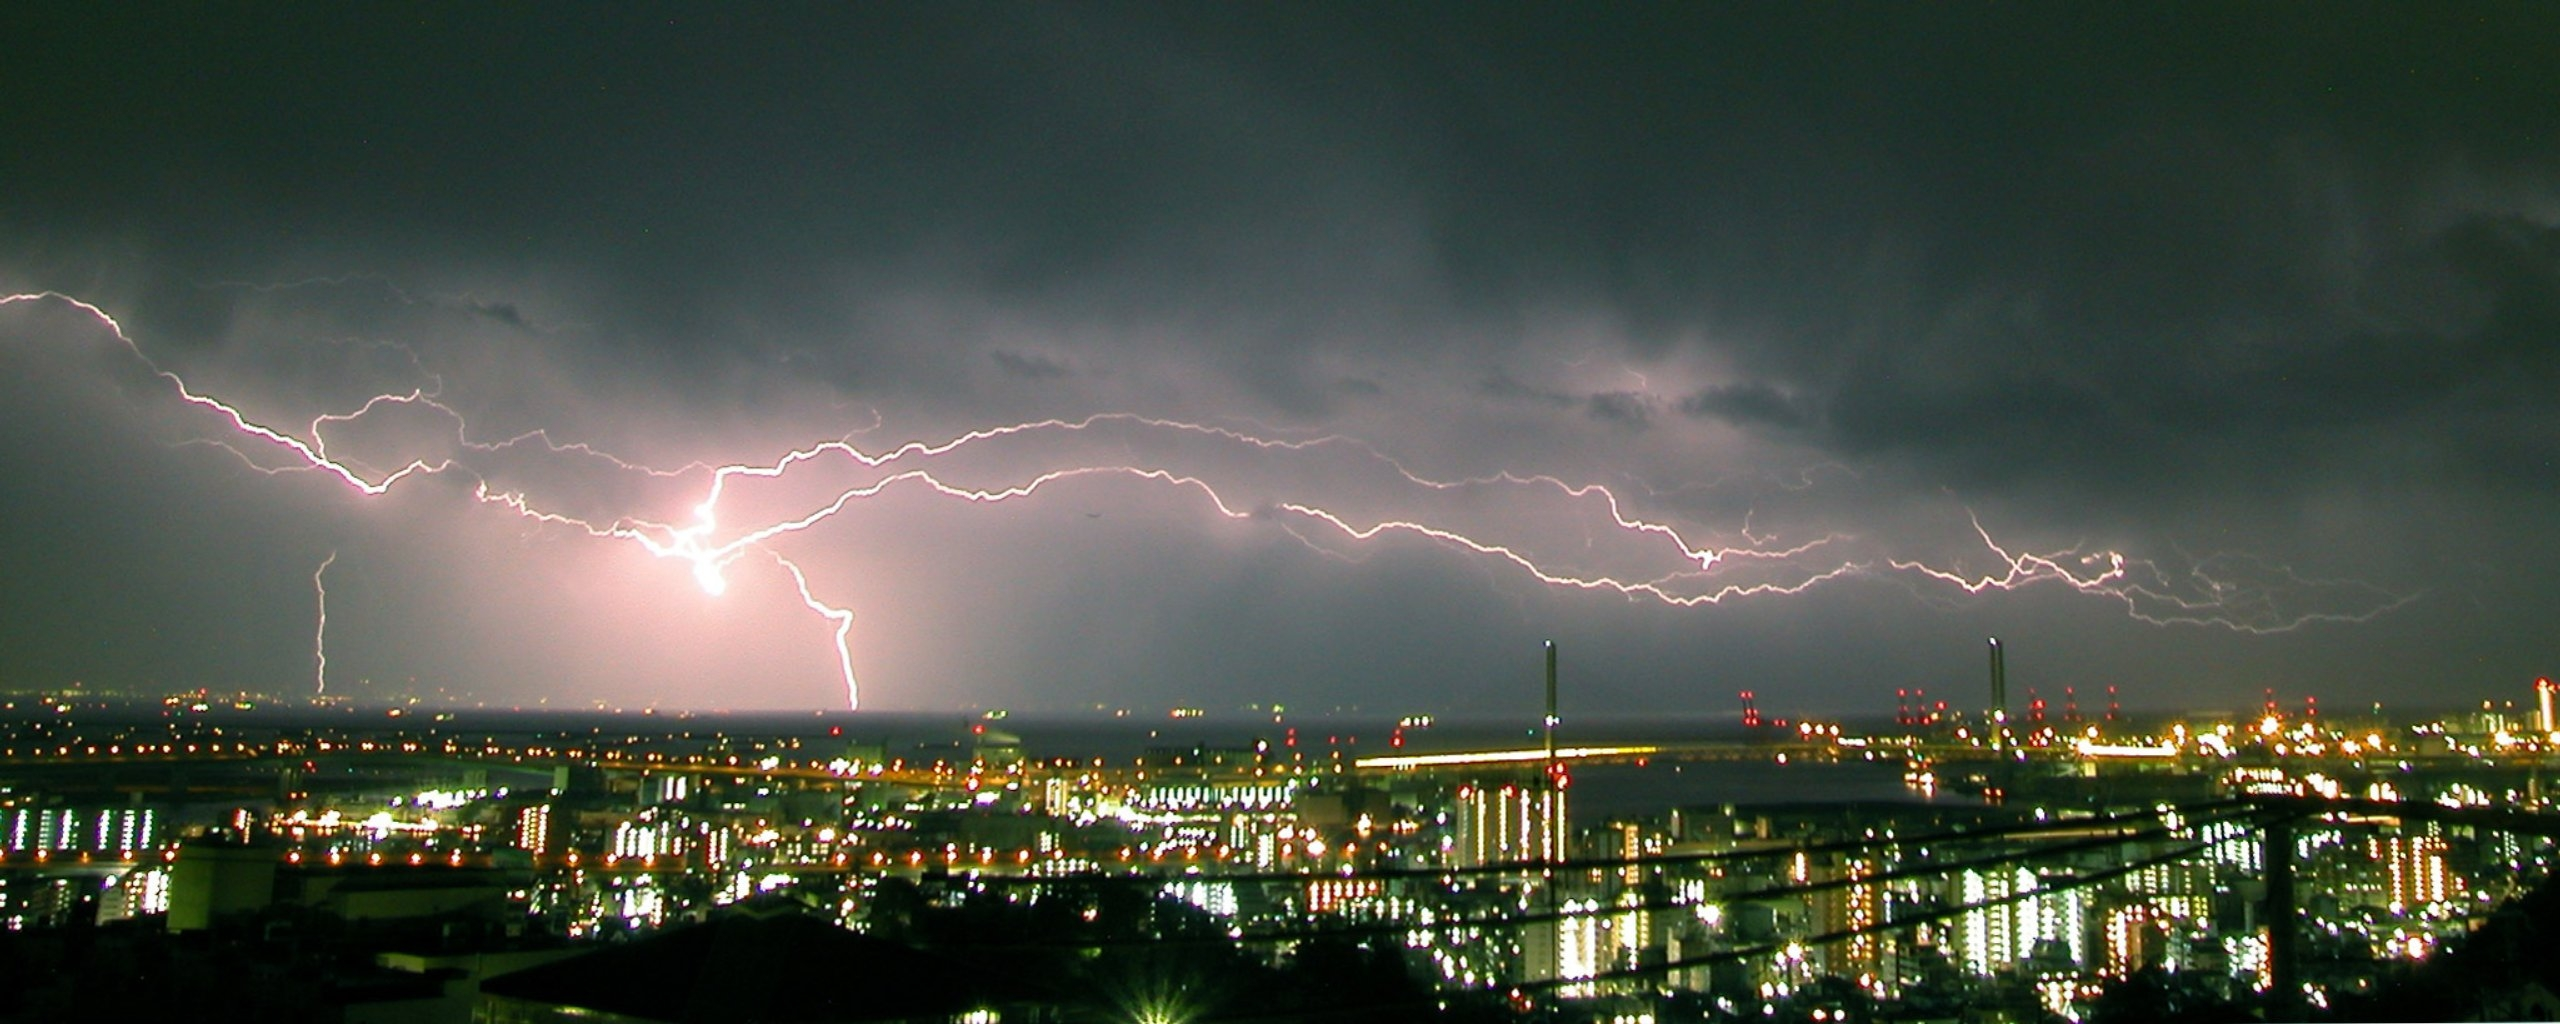 Lightening Wallpaper And Background Image 2560x1024 ID